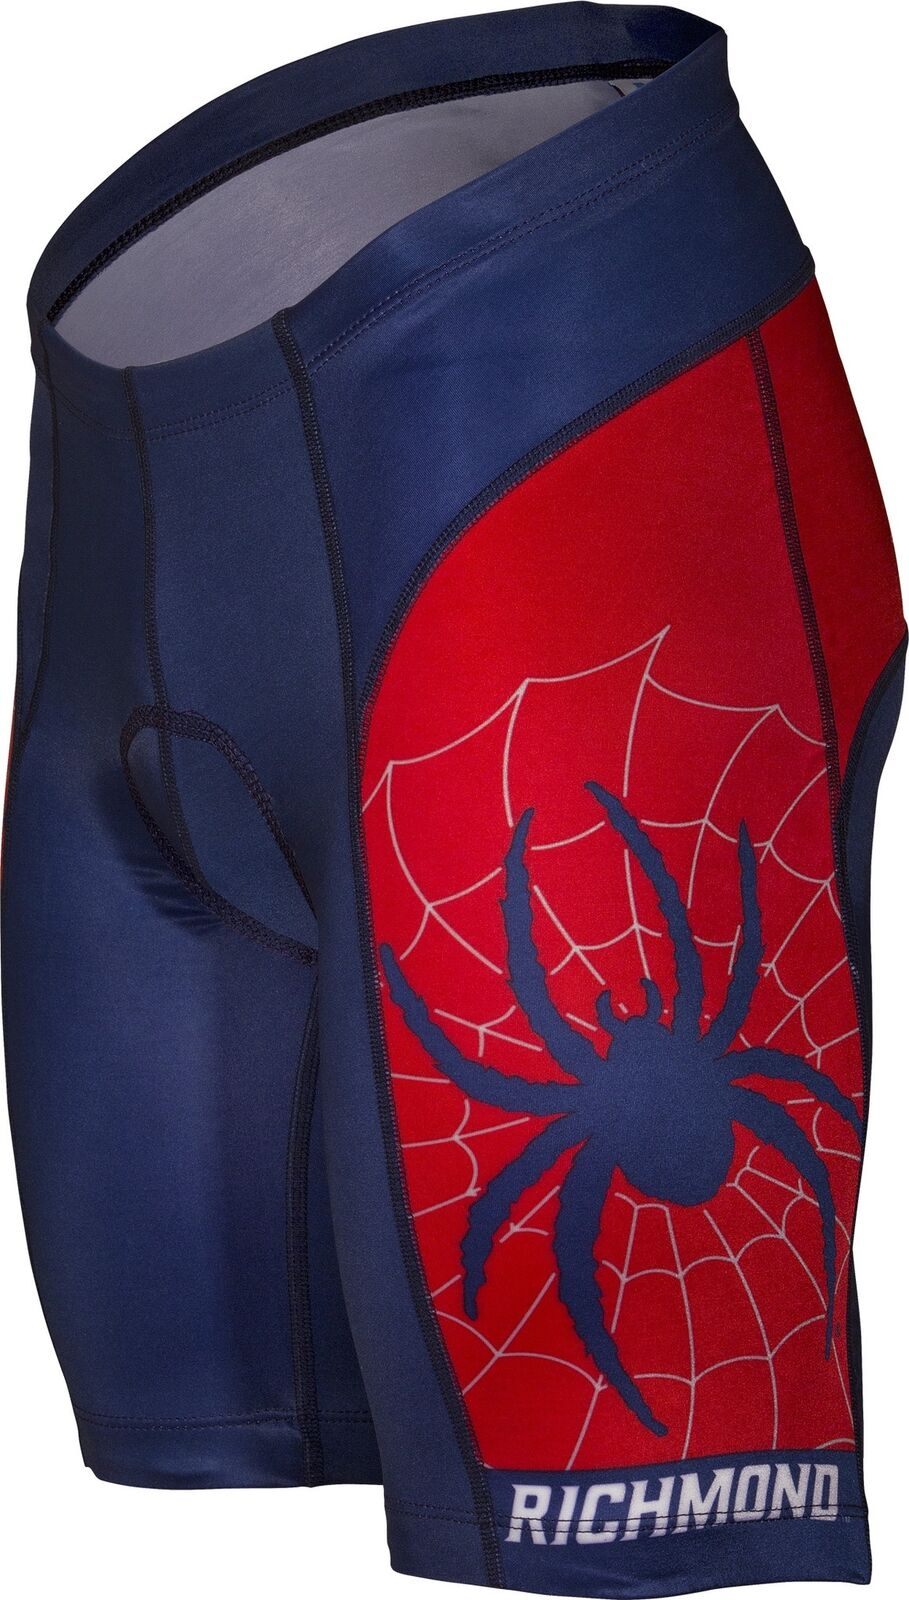 NCAA Men's Adrenaline Promotions Richmond Spiders Cycling Shorts